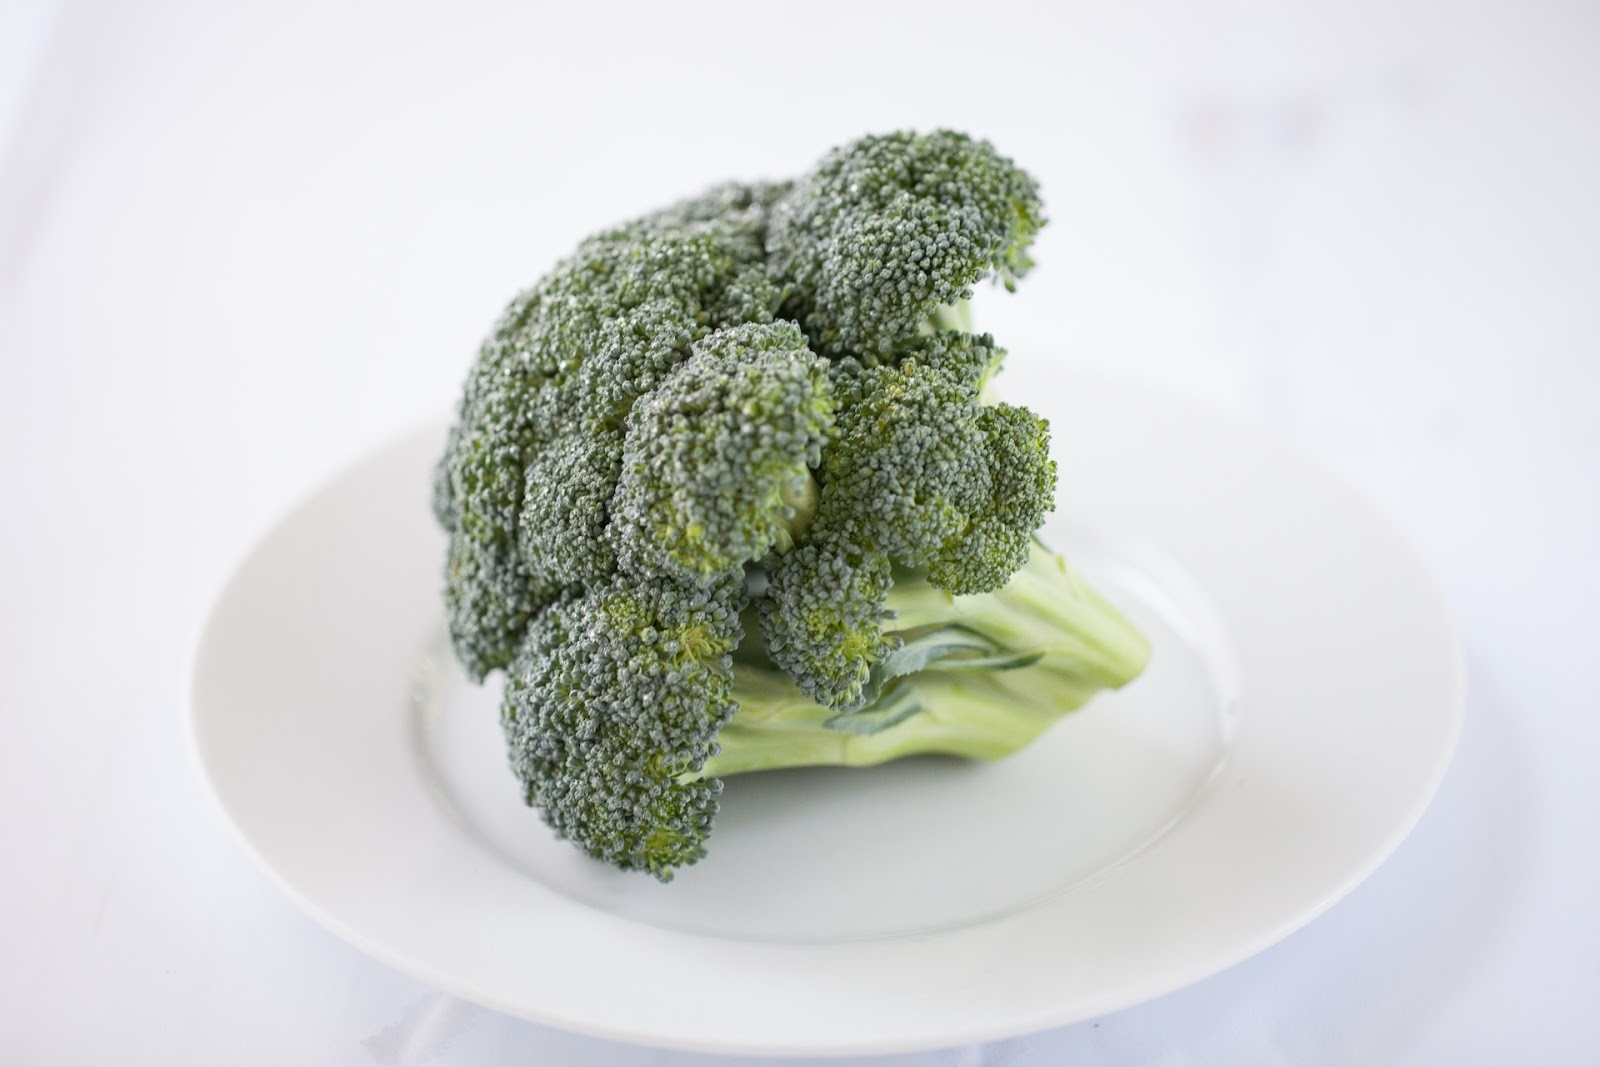 Raw broccoli on a white plate on a table.